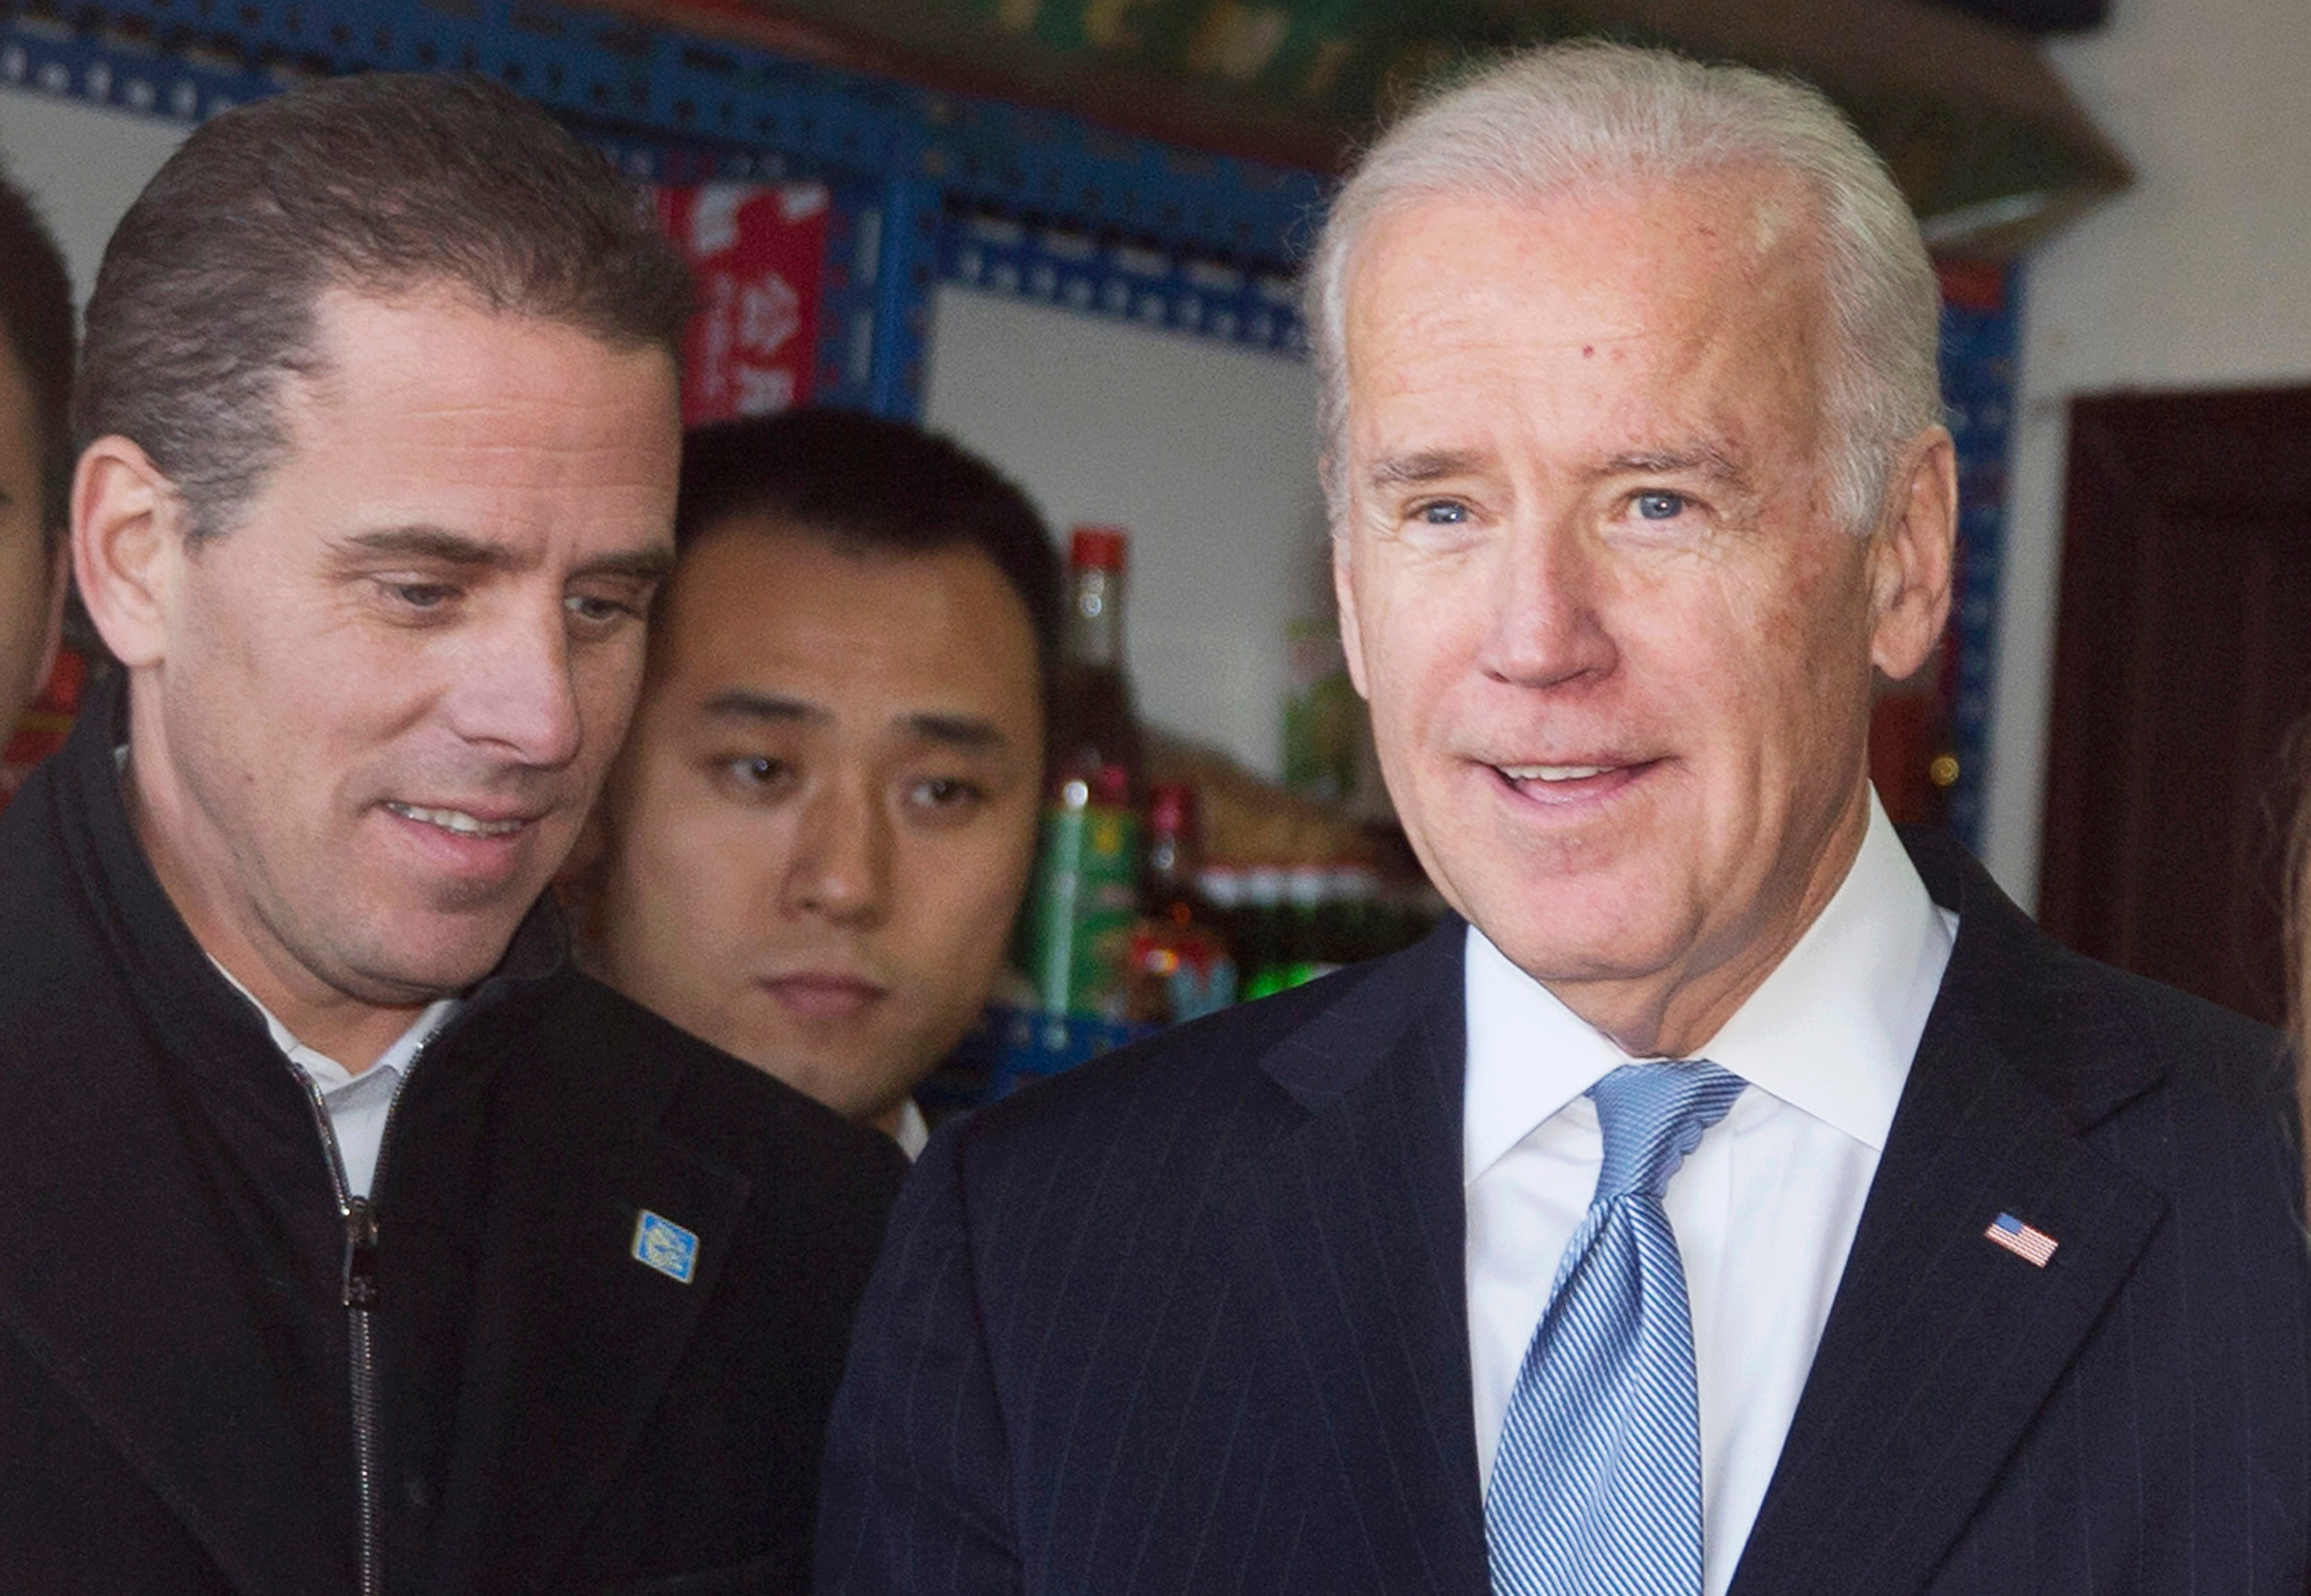 Opinion The Hunter Biden Story Is A Troubling Tale Of Privilege The Washington Post